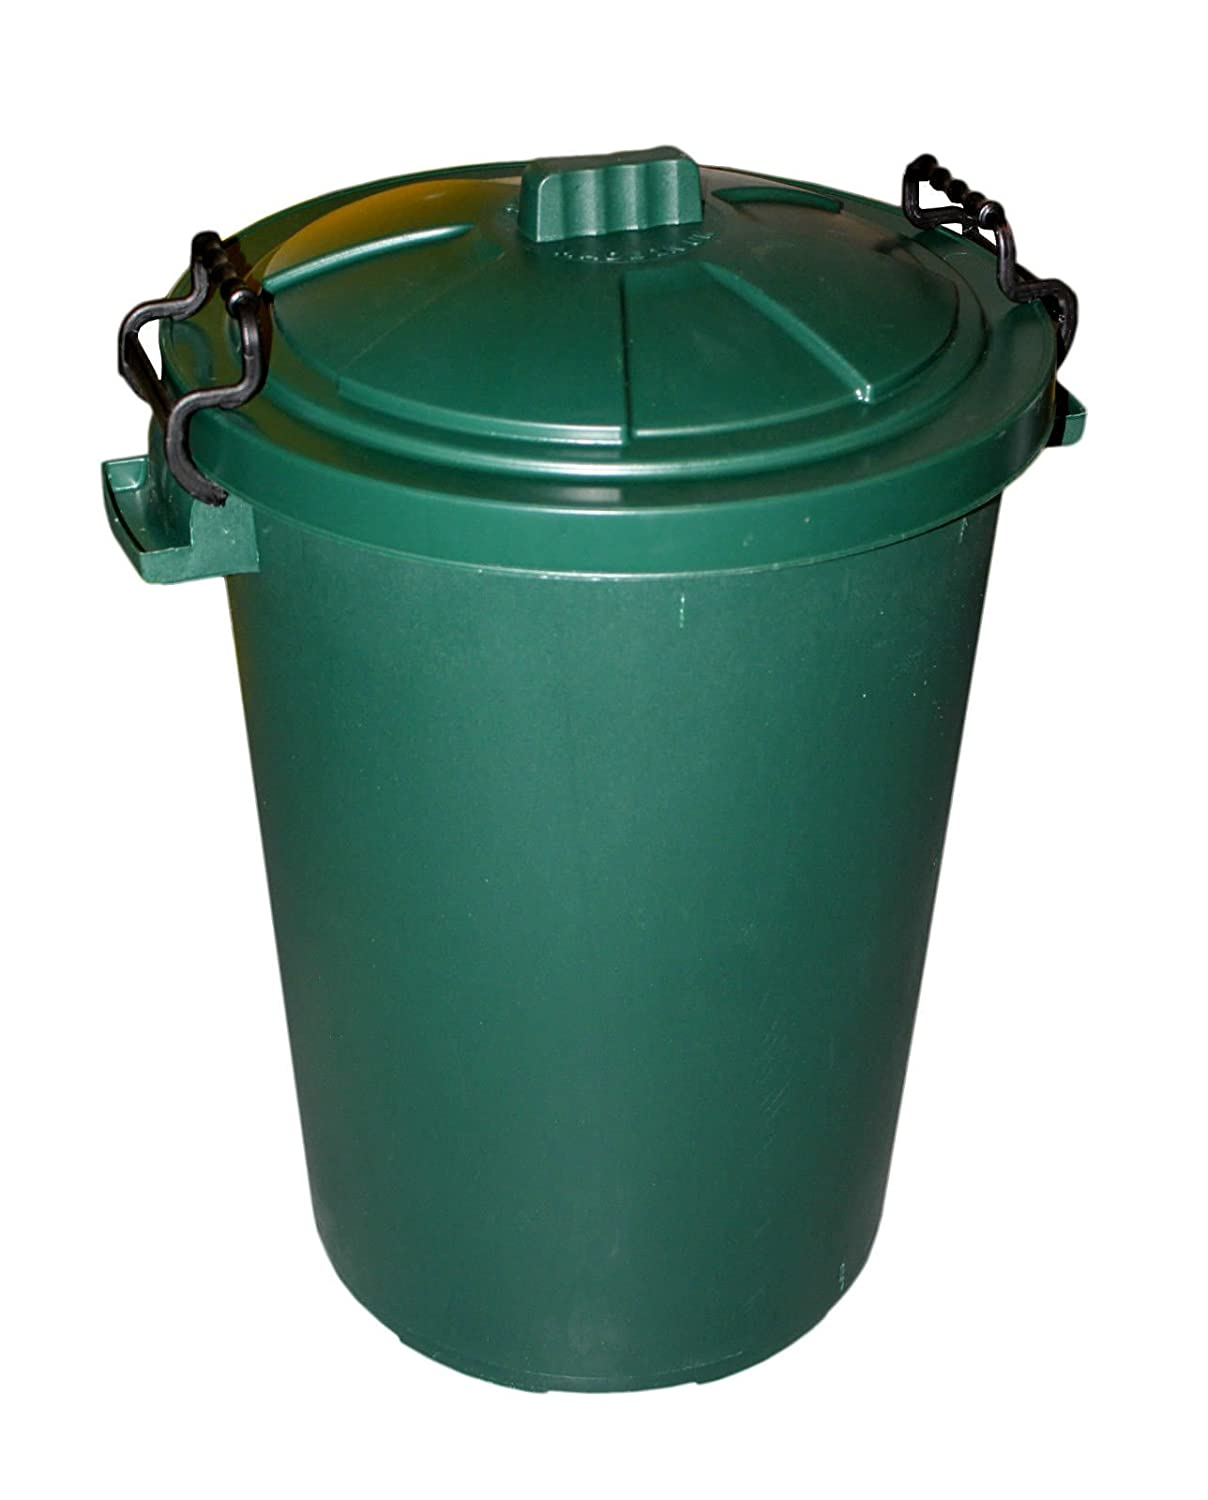 85L 85 Litre Green Plastic Bin Ideal for Animal Feed / Food Storage / Recycling / Waste with Lockable Handles